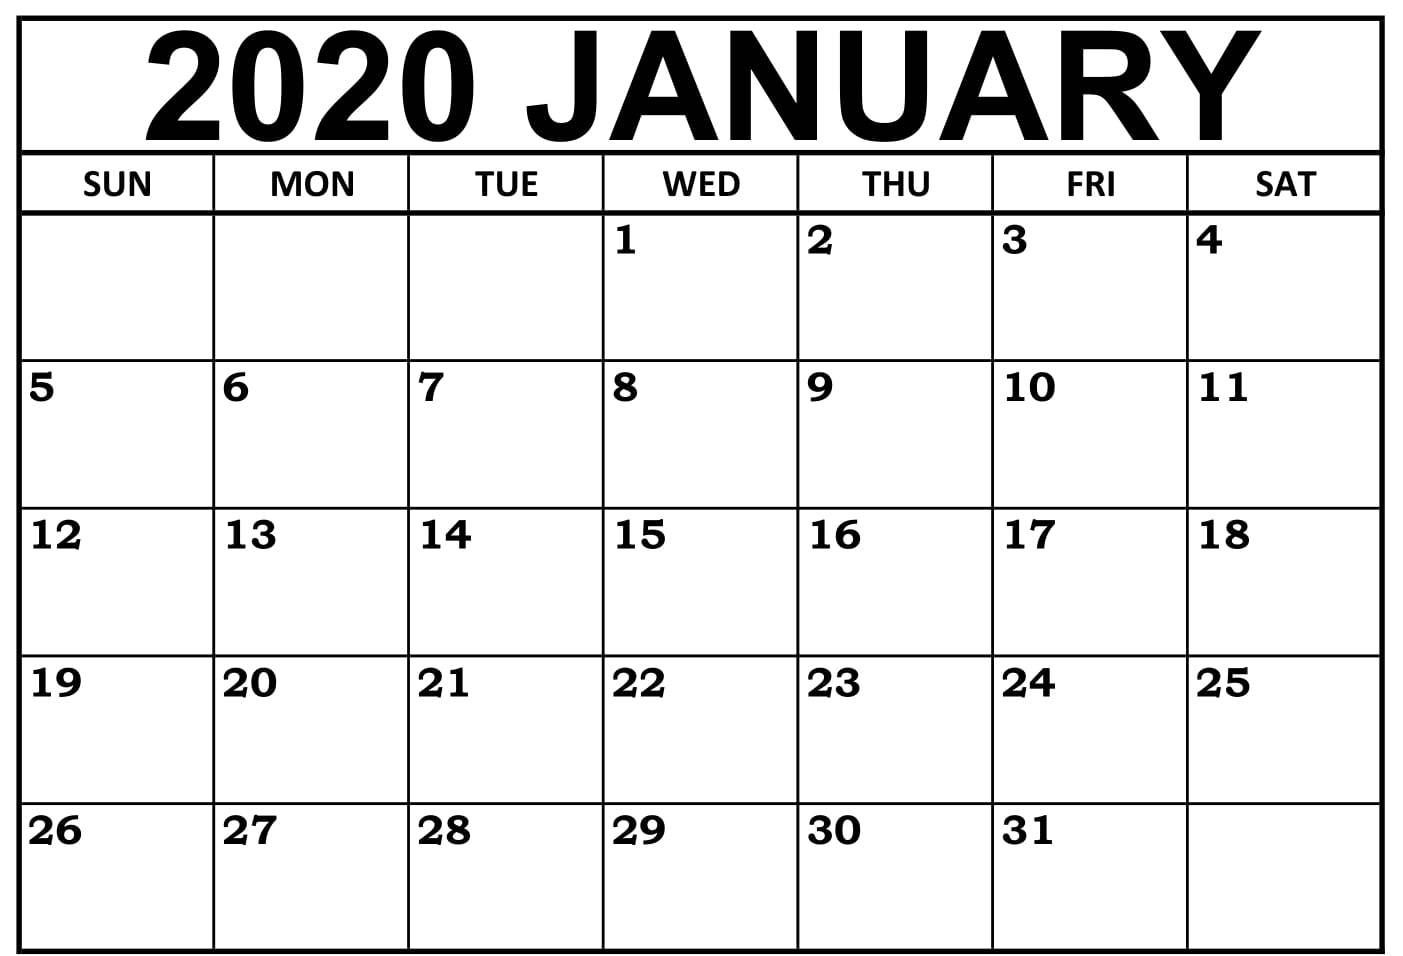 Monthly Calendar Template January 2020 #january #january2020